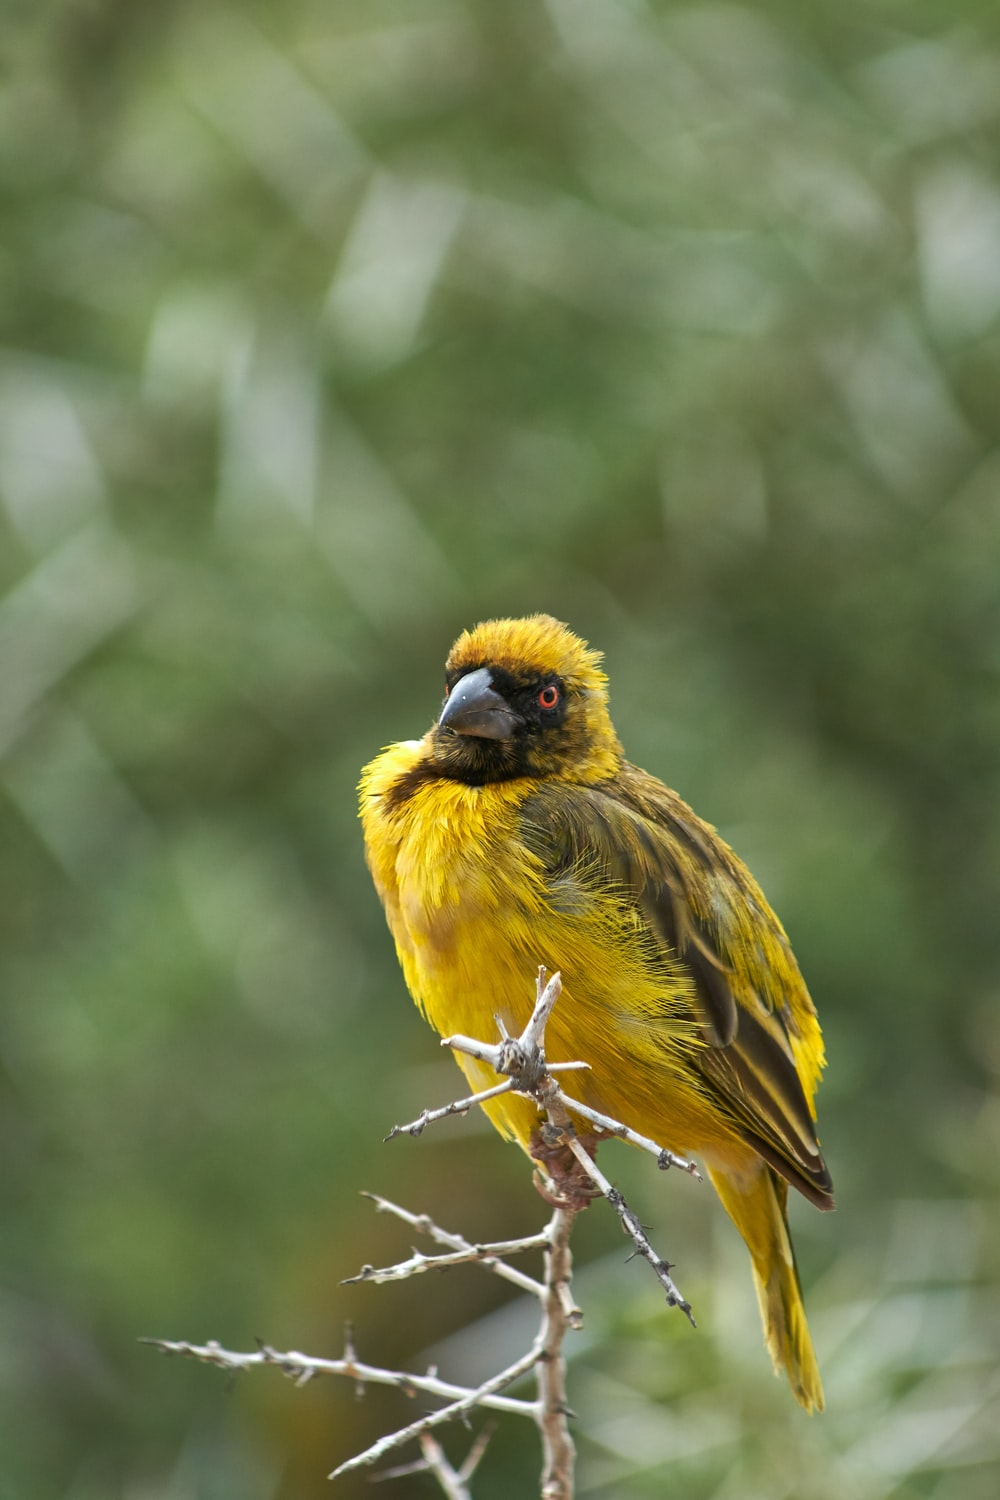 yellow and black bird photograph